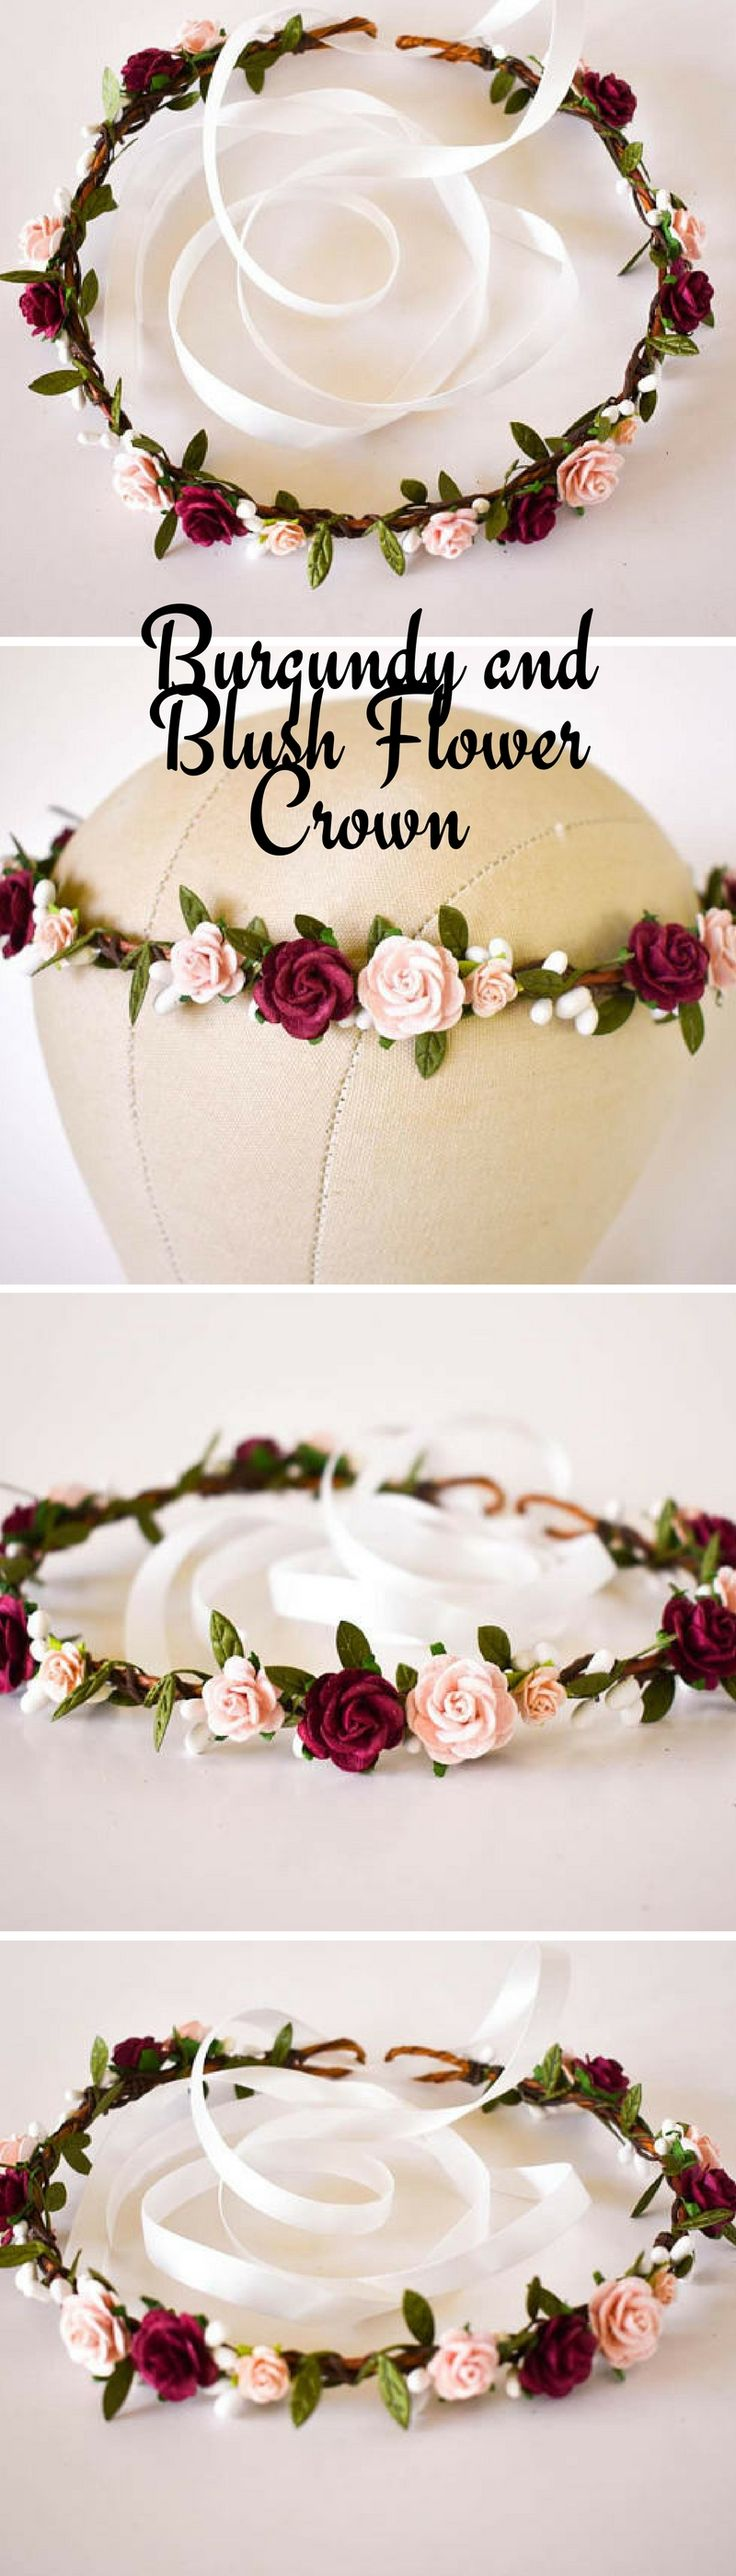 Burgundy and Blush Flower Crown for Wedding #wedding #weddingideas #ad